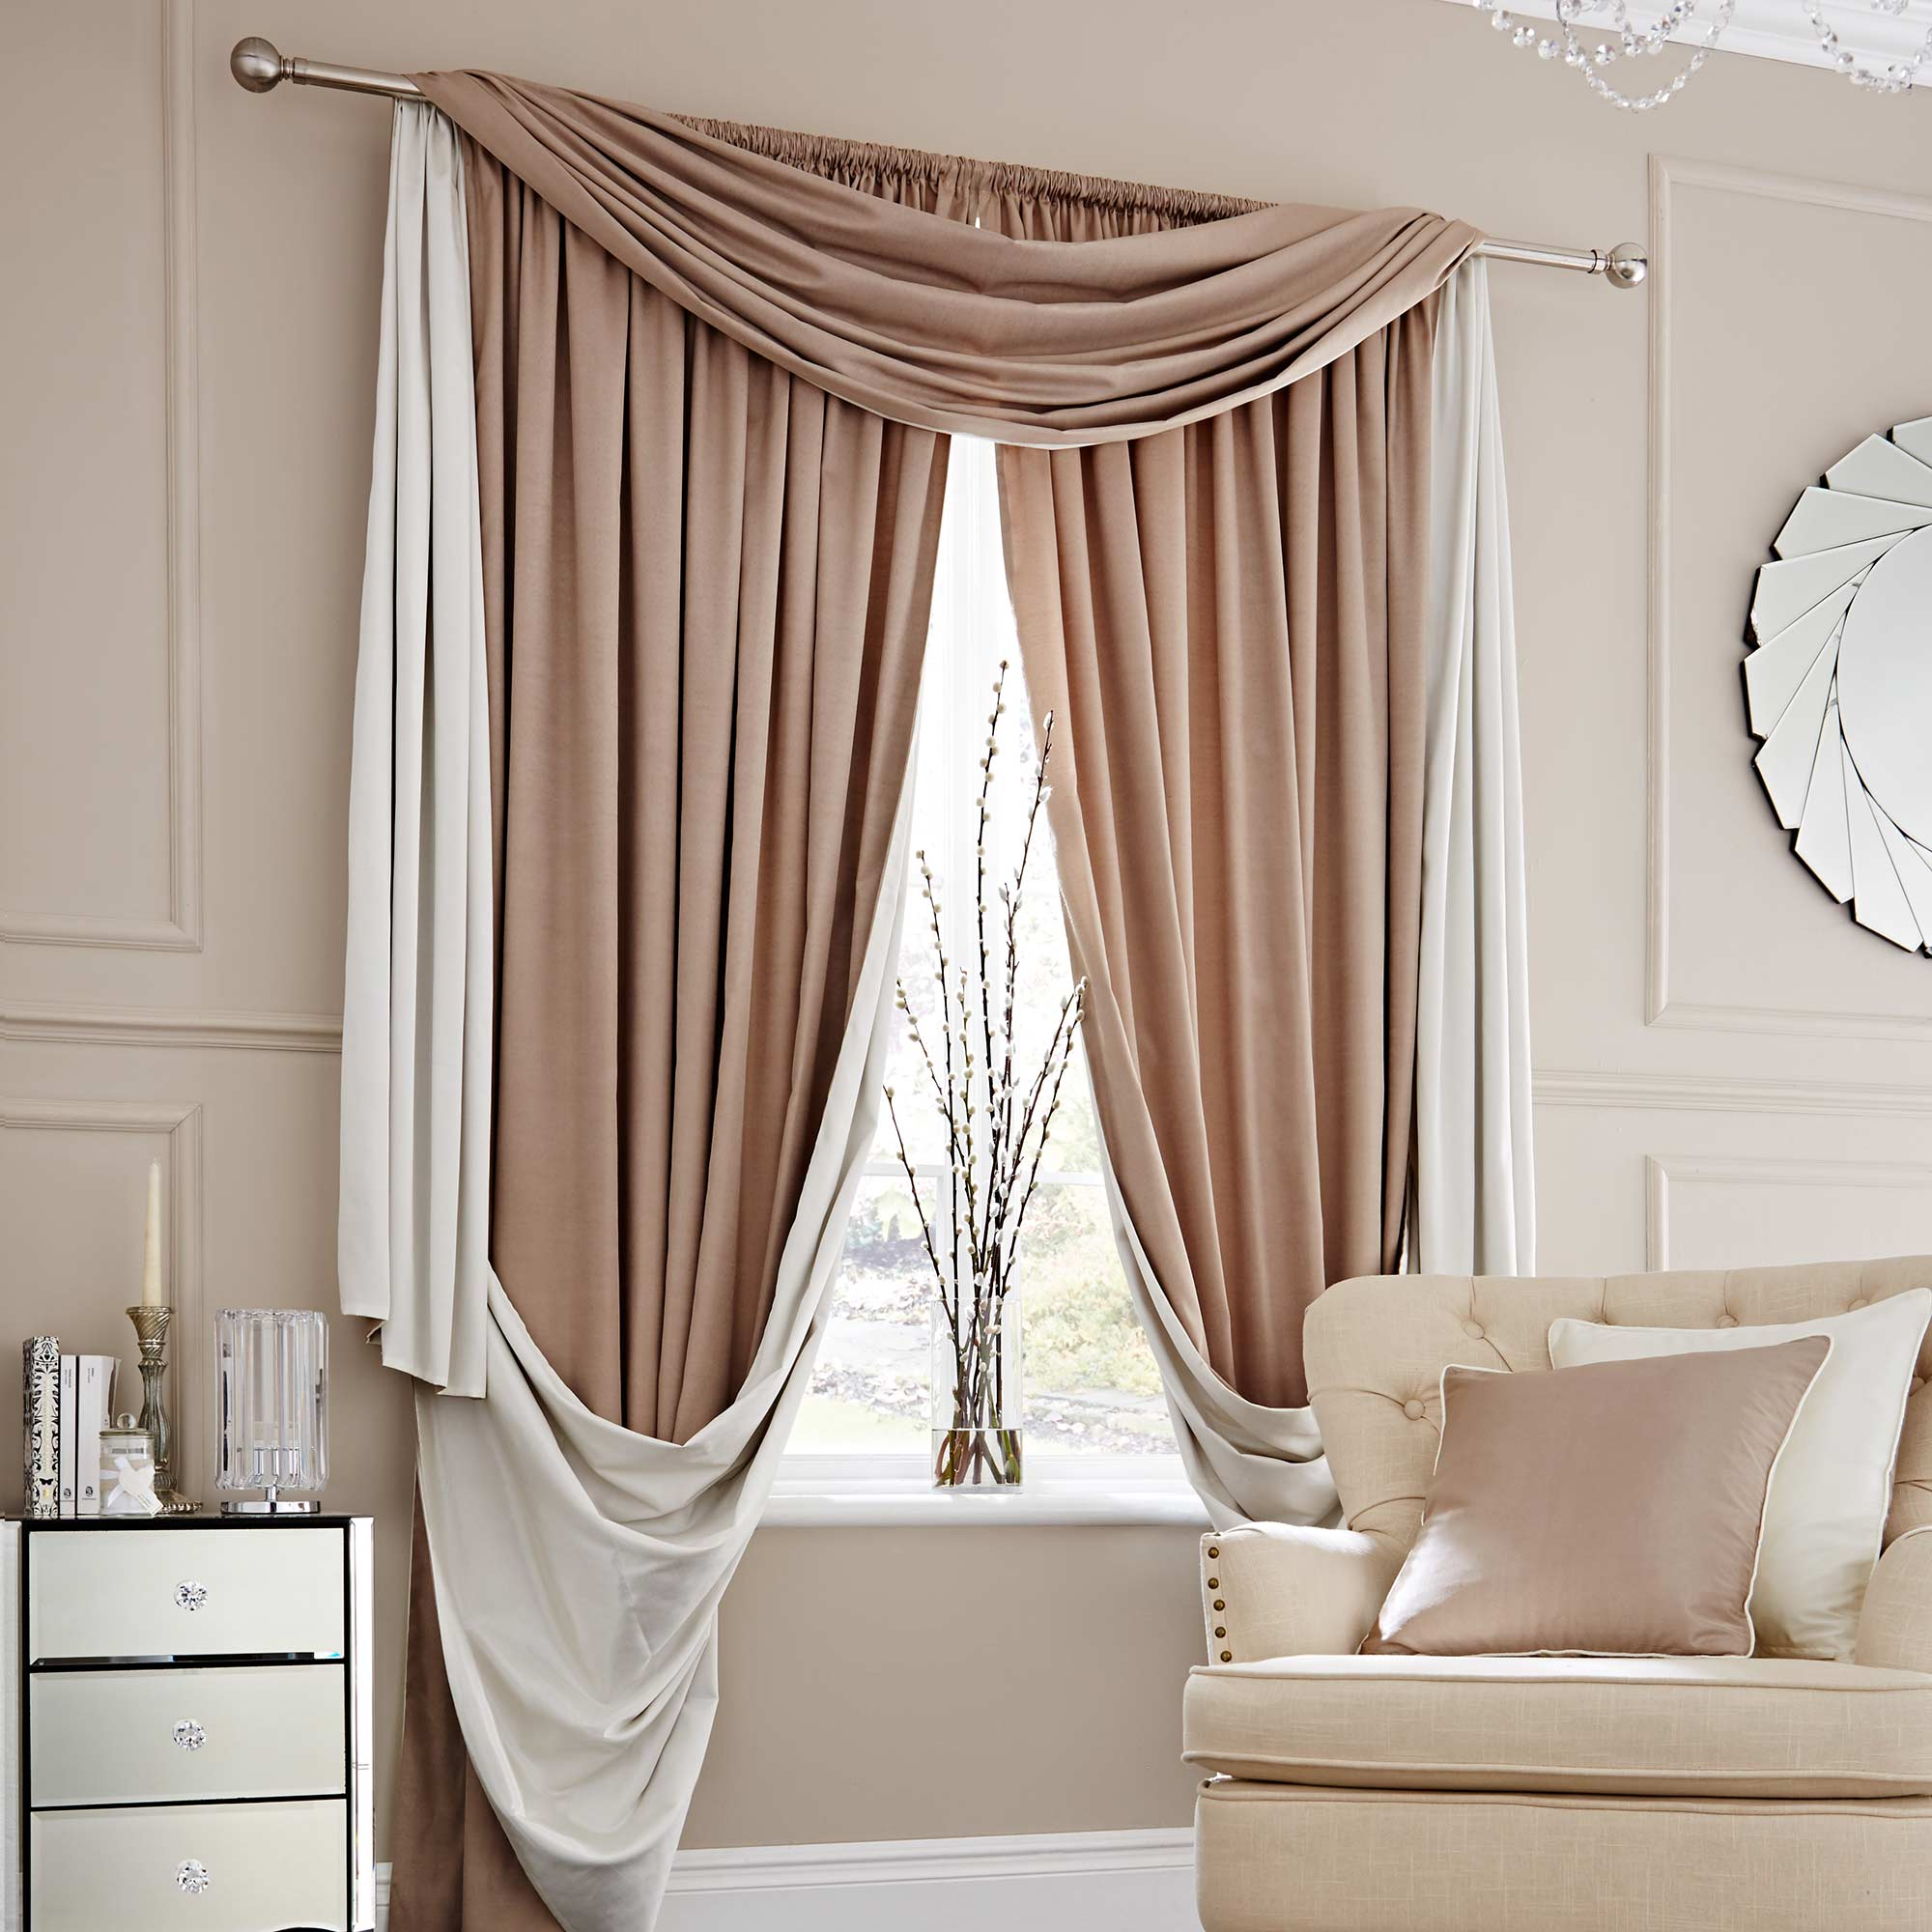 Photo of Elegance natural lined slot top curtains natural